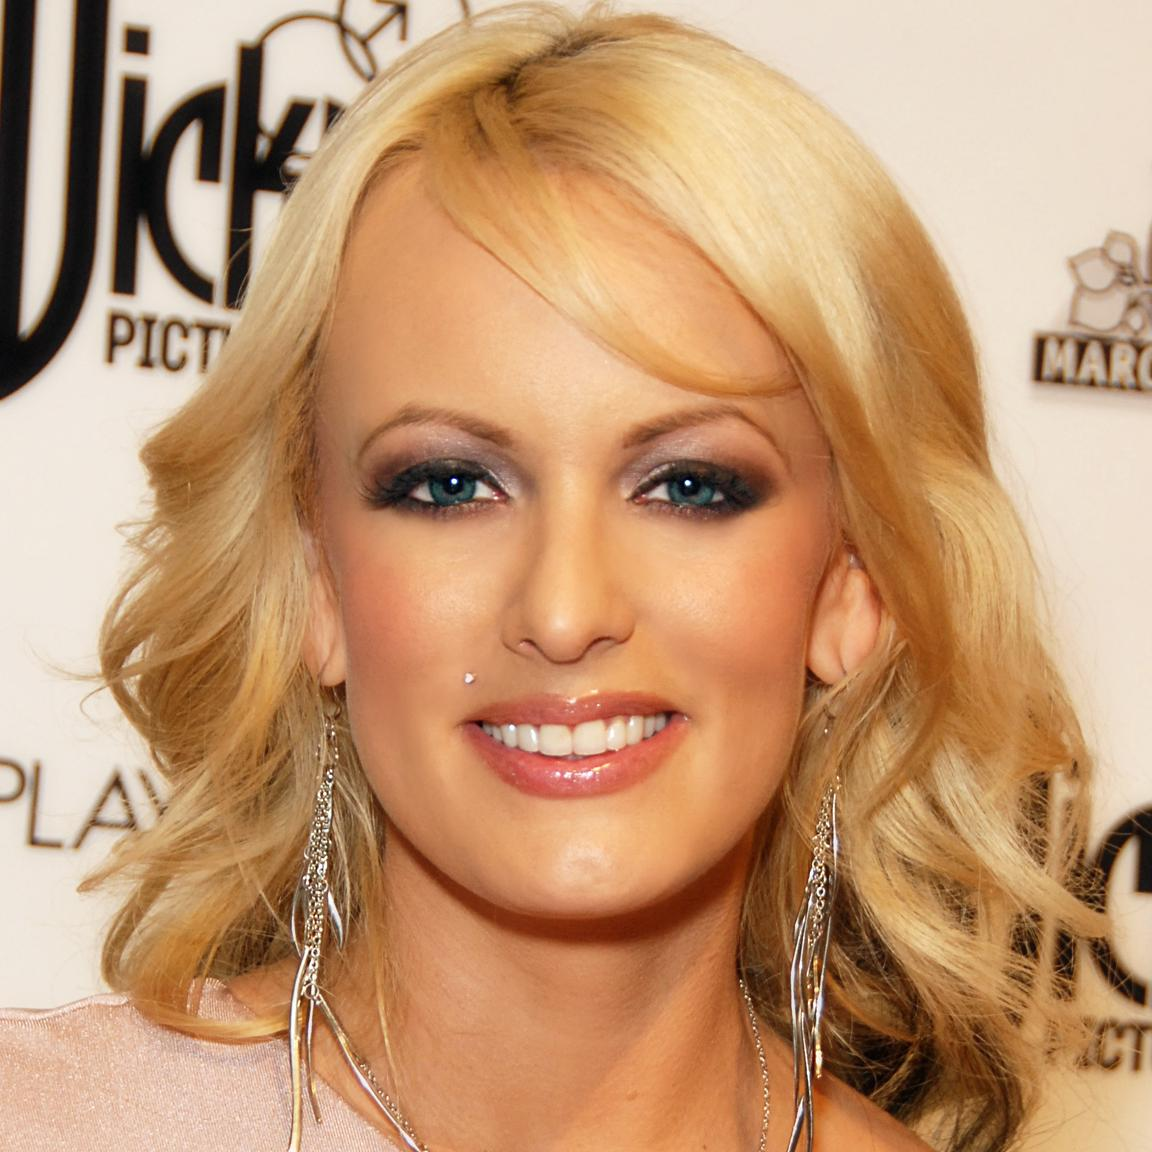 Stormy Daniels Bio, Net Worth, Facts